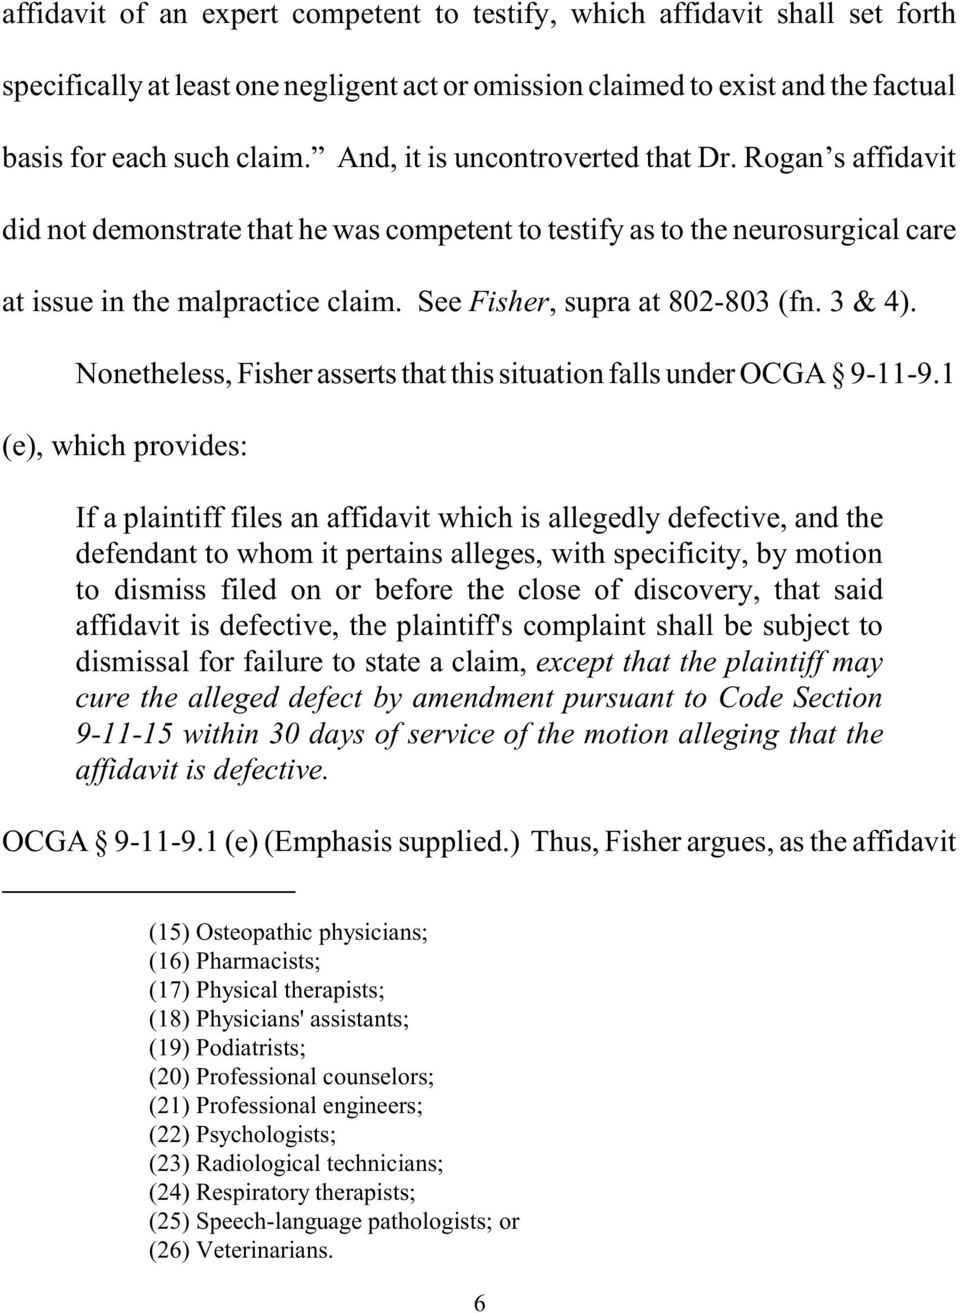 See Fisher, supra at 802-803 (fn. 3 & 4). Nonetheless, Fisher asserts that this situation falls under OCGA 9-11-9.